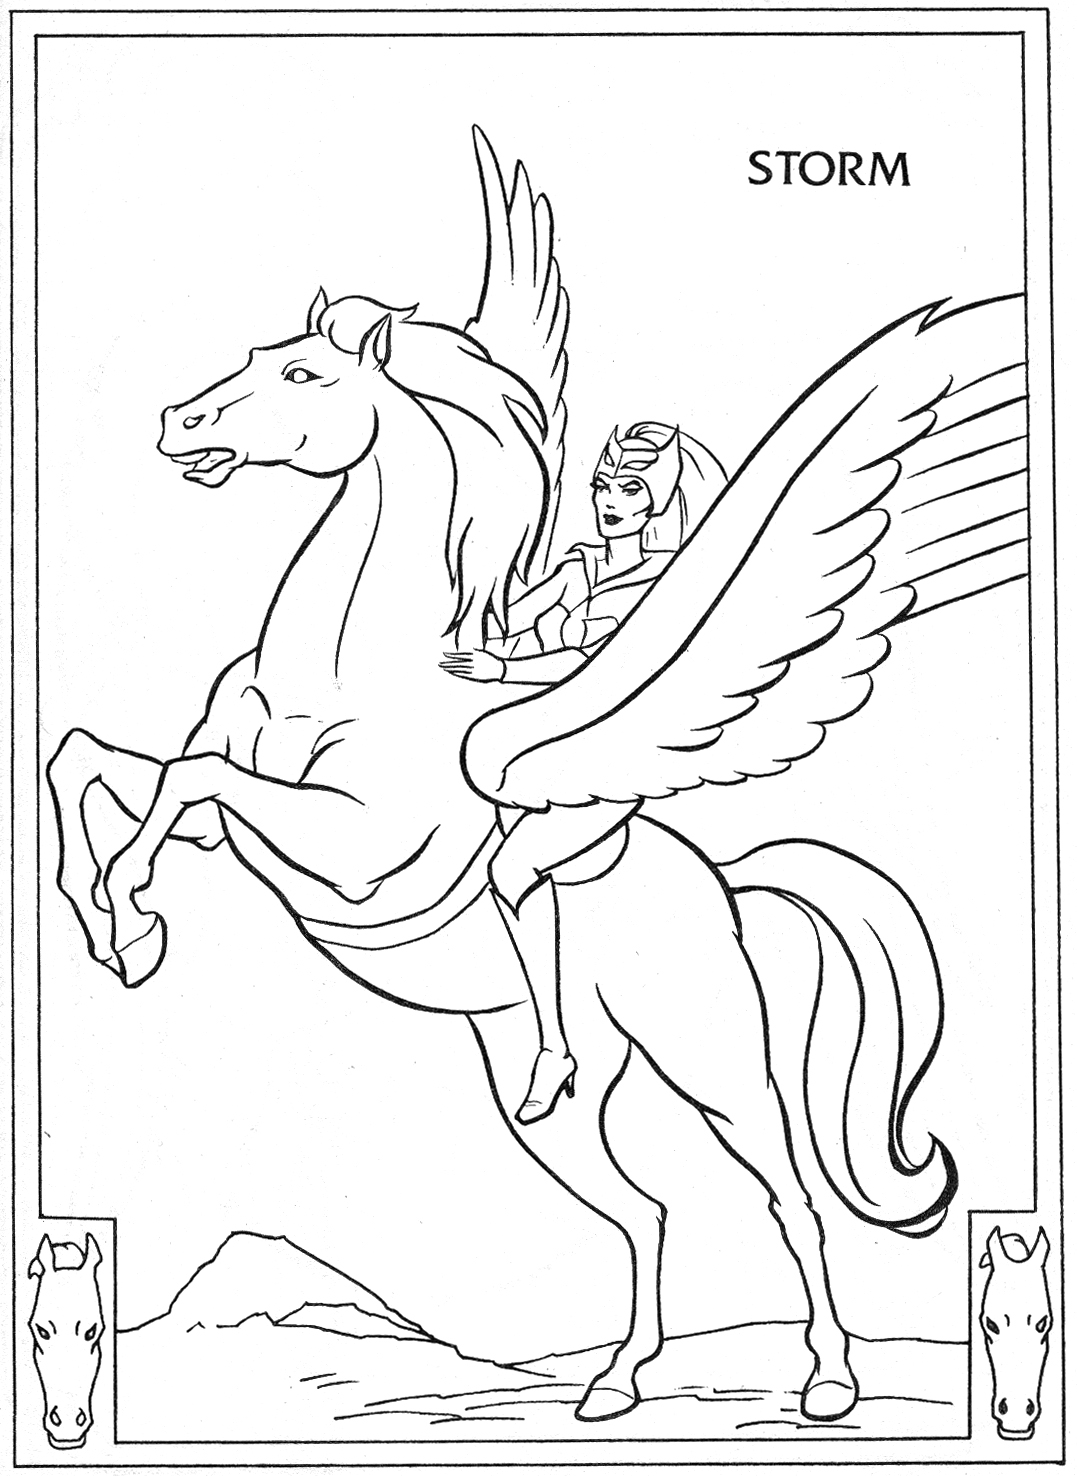 he man coloring pages printable